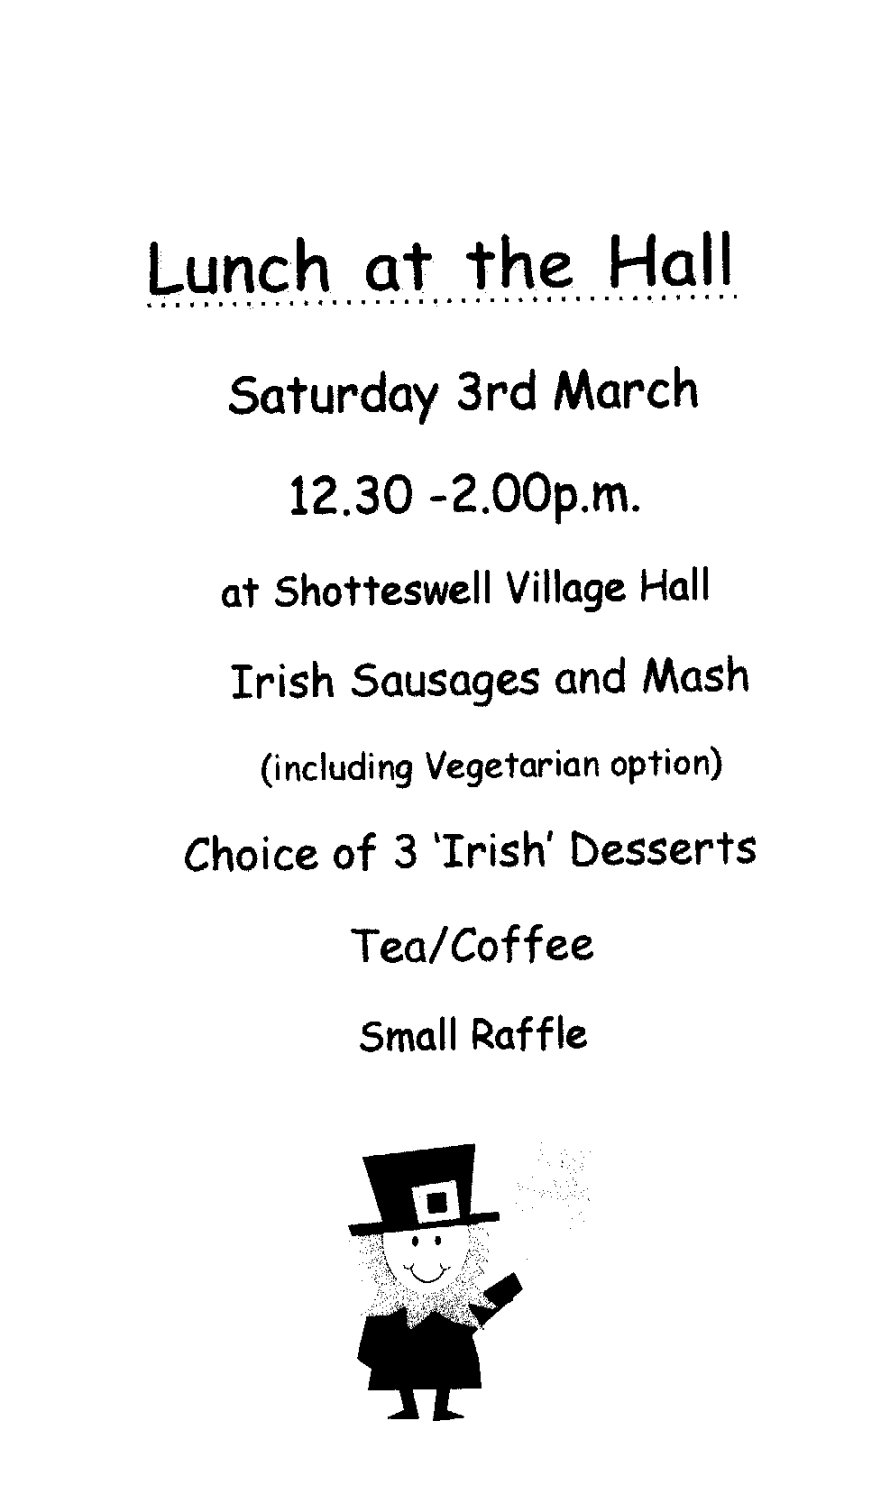 SVH Lunch at the Hall 03.03.18